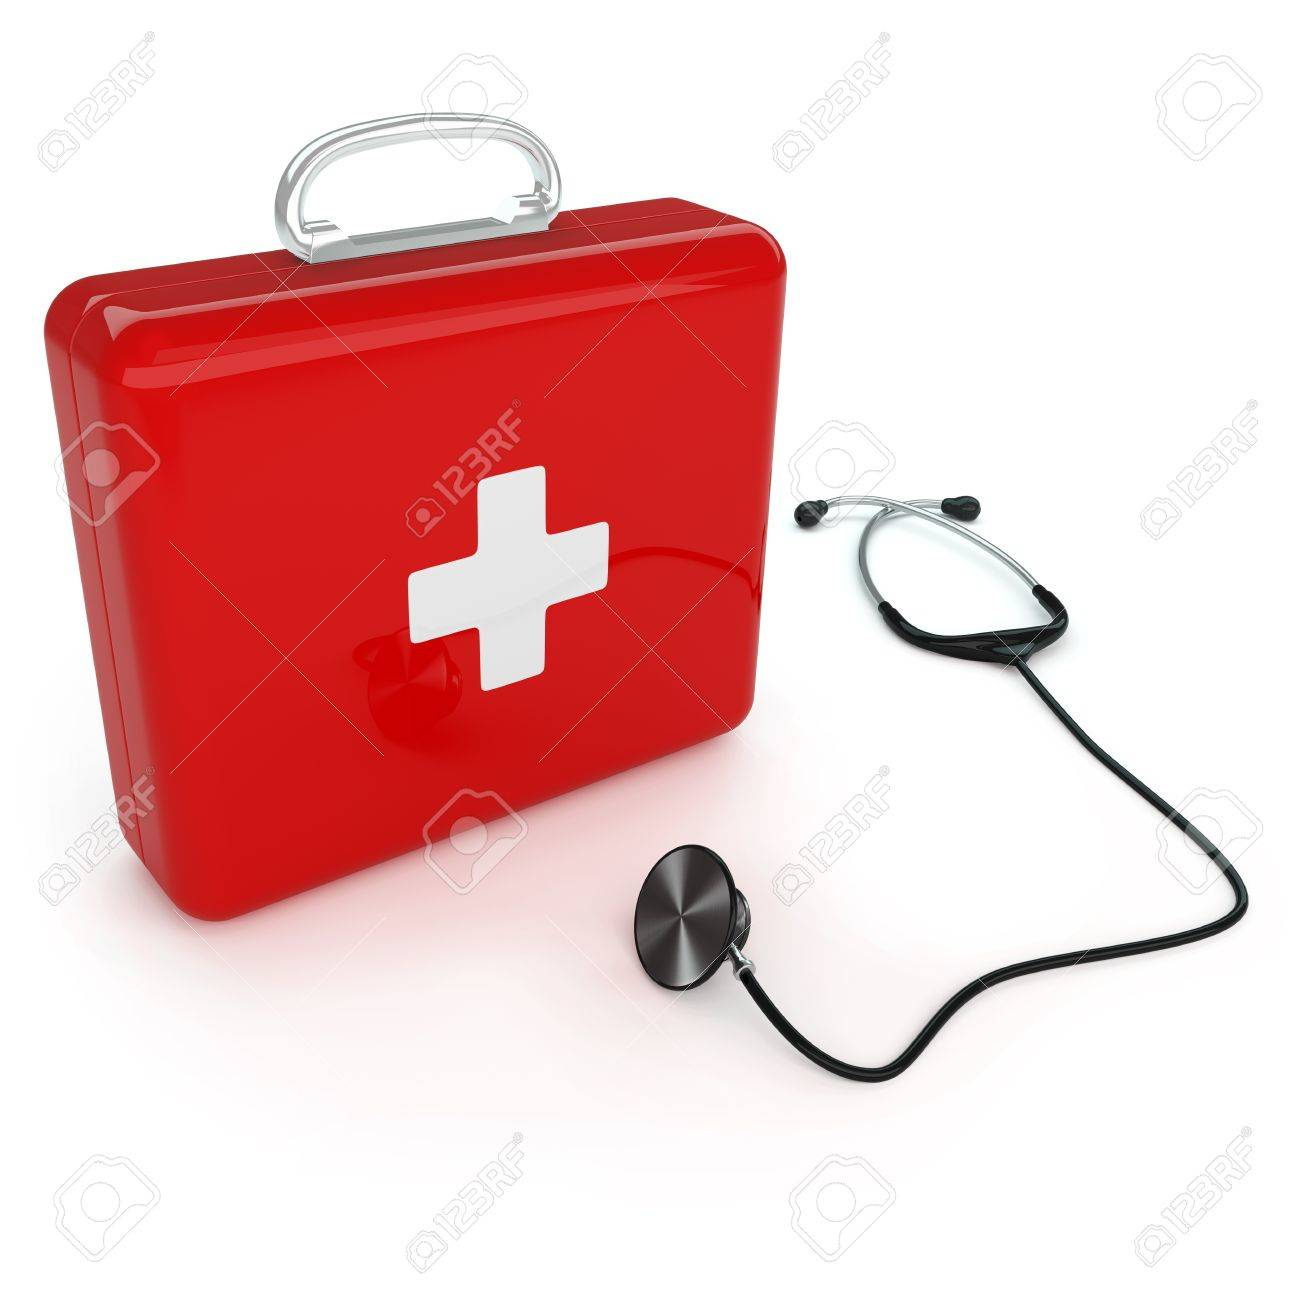 Isolated first aid kit and stethoscope on white background Stock Photo - 17697188